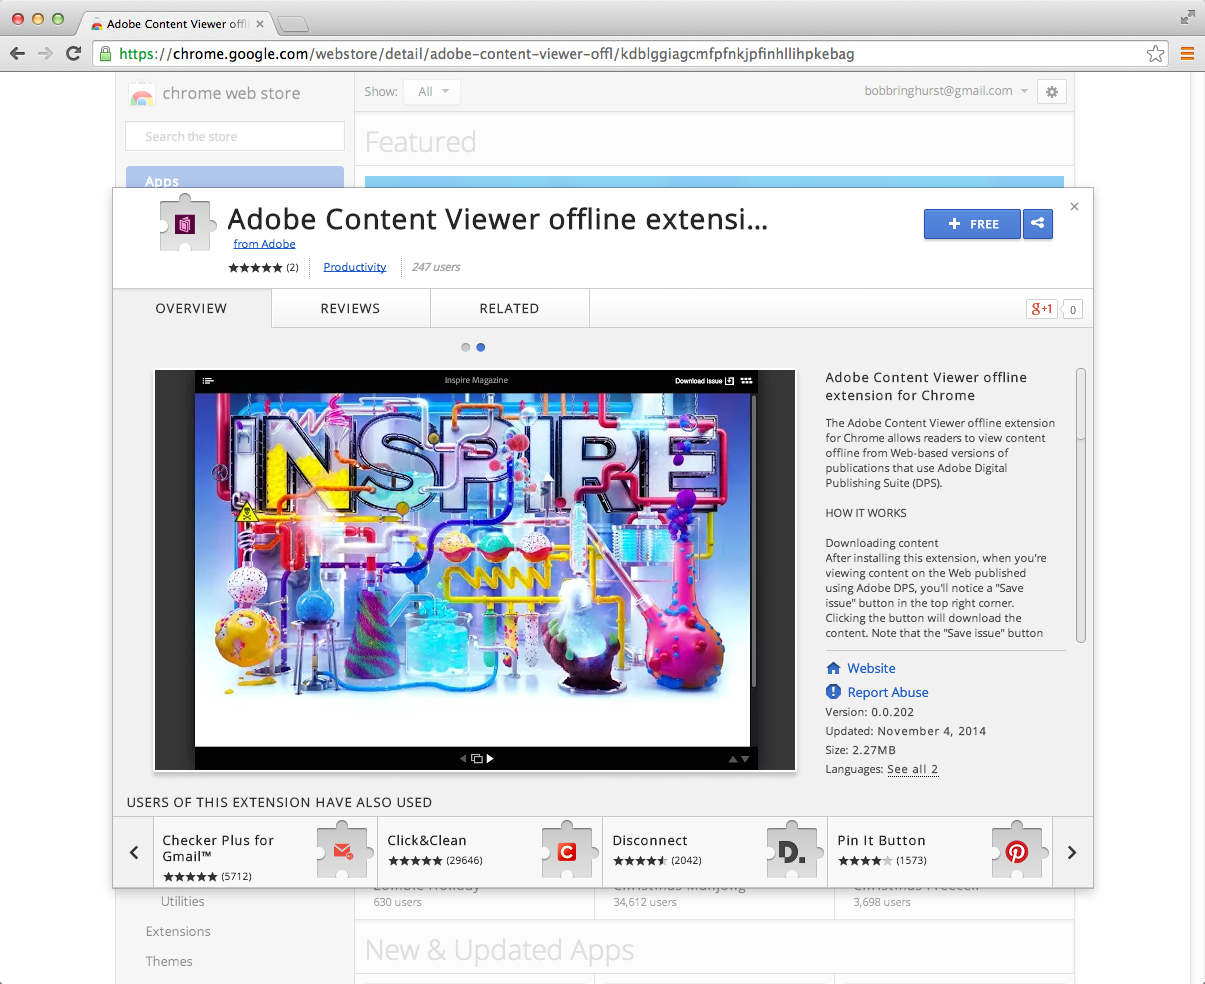 Adobe Content Viewer offline extension